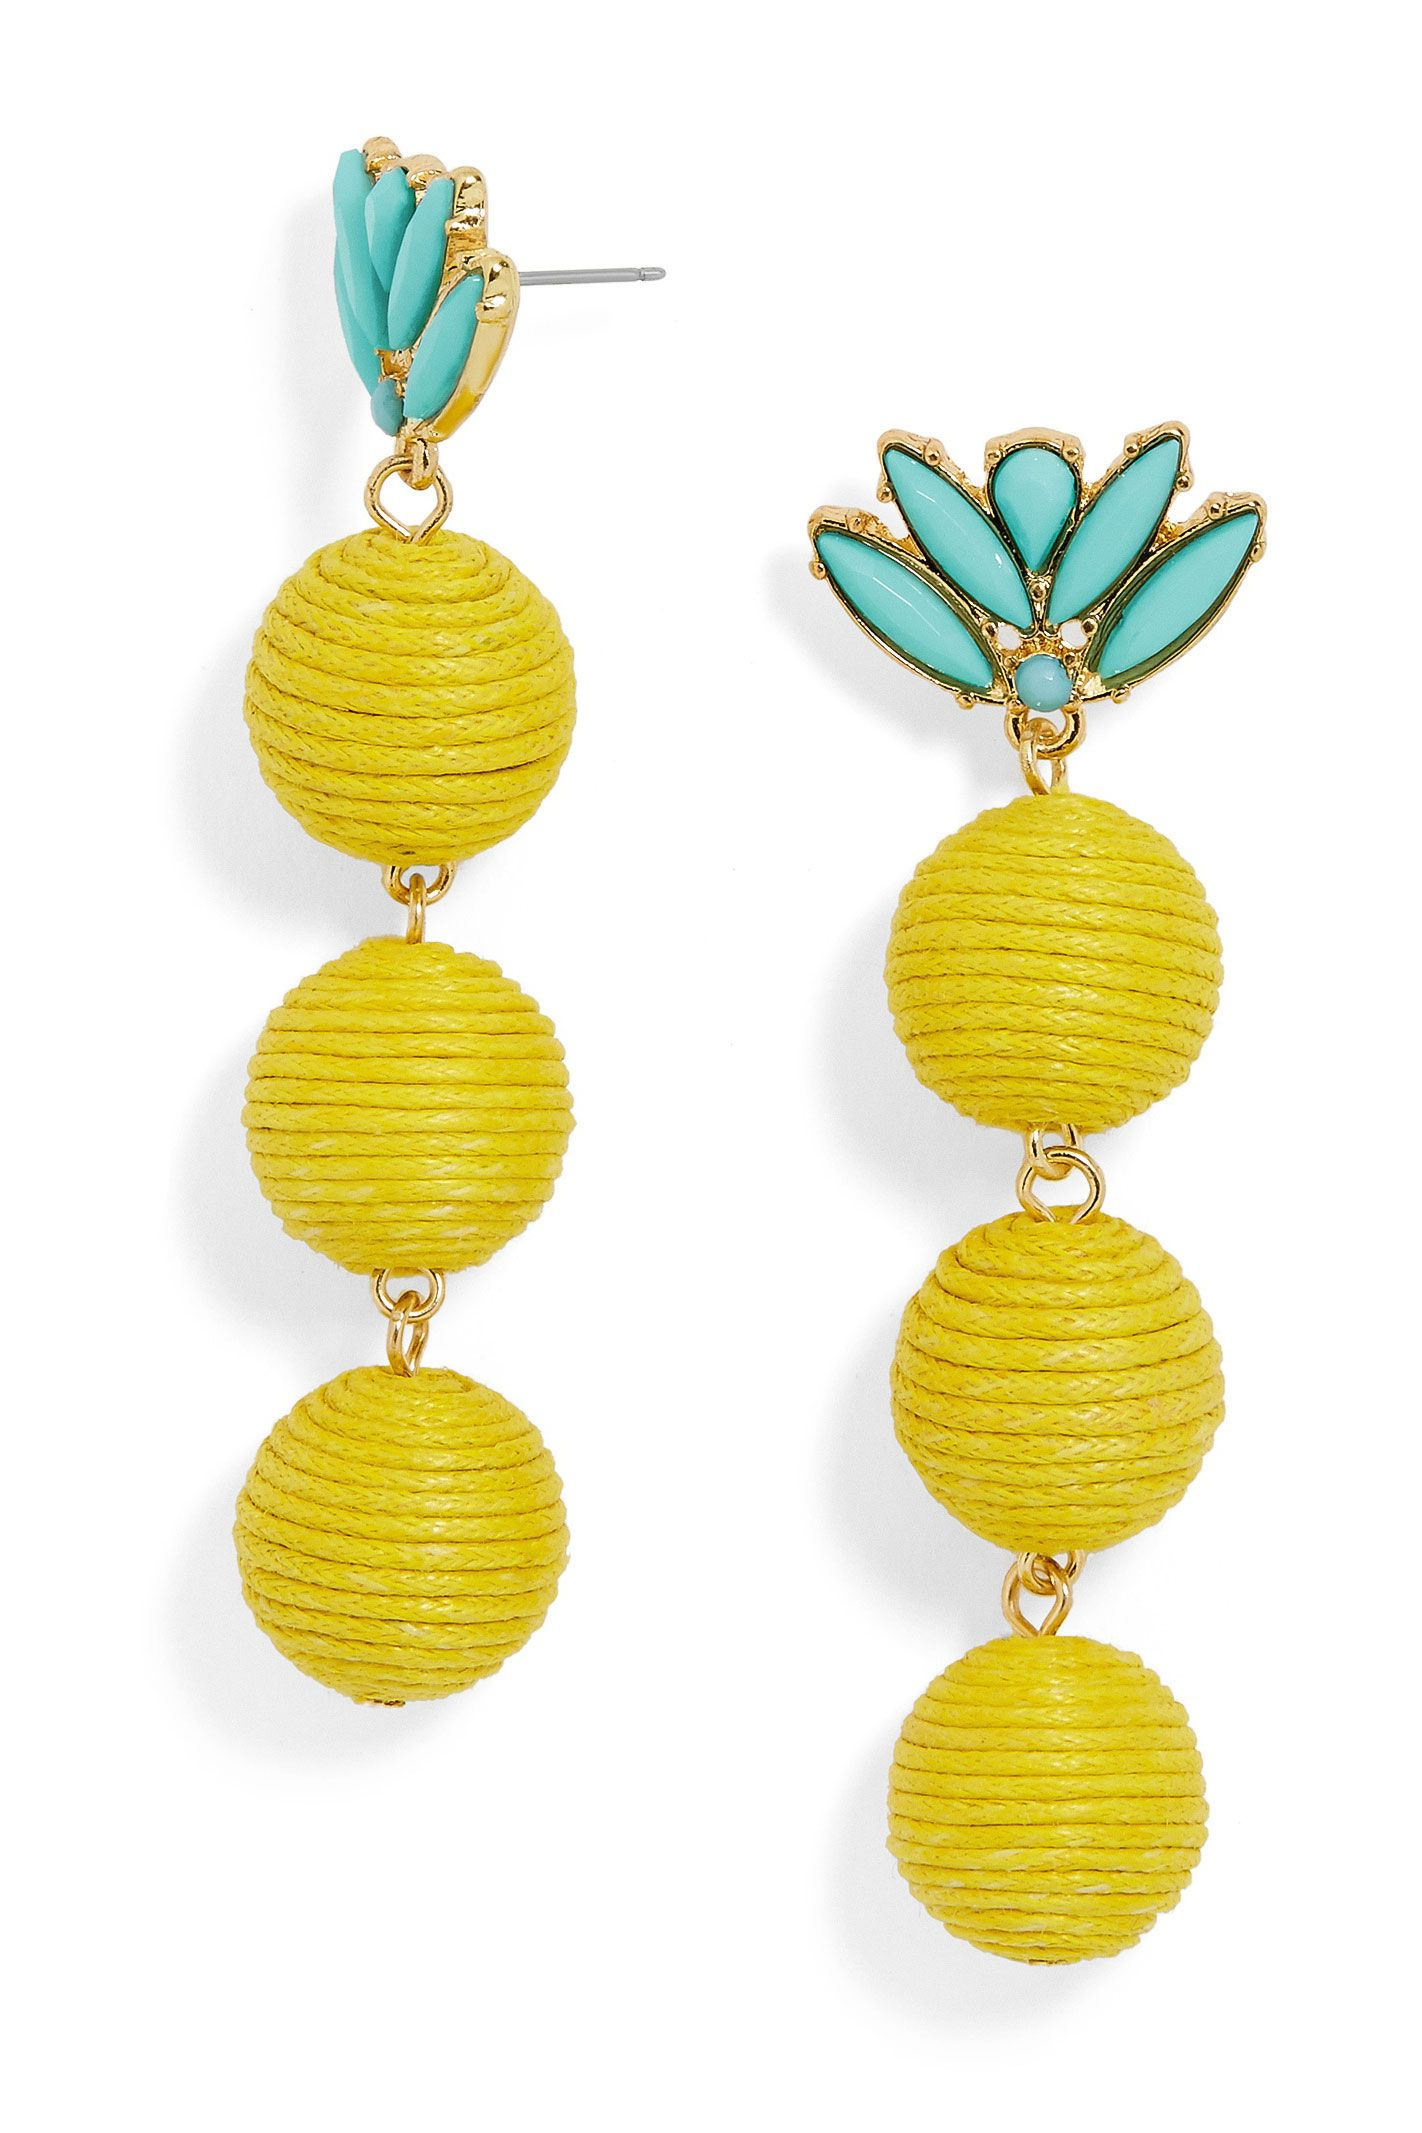 "<p>Add a pinch of color with stacked earrings. Turquoise-hued stones provide an extra splash.</p><p><em data-redactor-tag=""em"" data-verified=""redactor"">BaubleBar Kiki Drops, $42; </em><a href=""https://www.baublebar.com/product/30252-kiki-drops-earrings.html"" target=""_blank"" data-tracking-id=""recirc-text-link""><em data-redactor-tag=""em"" data-verified=""redactor"">baublebar.com</em></a></p>"